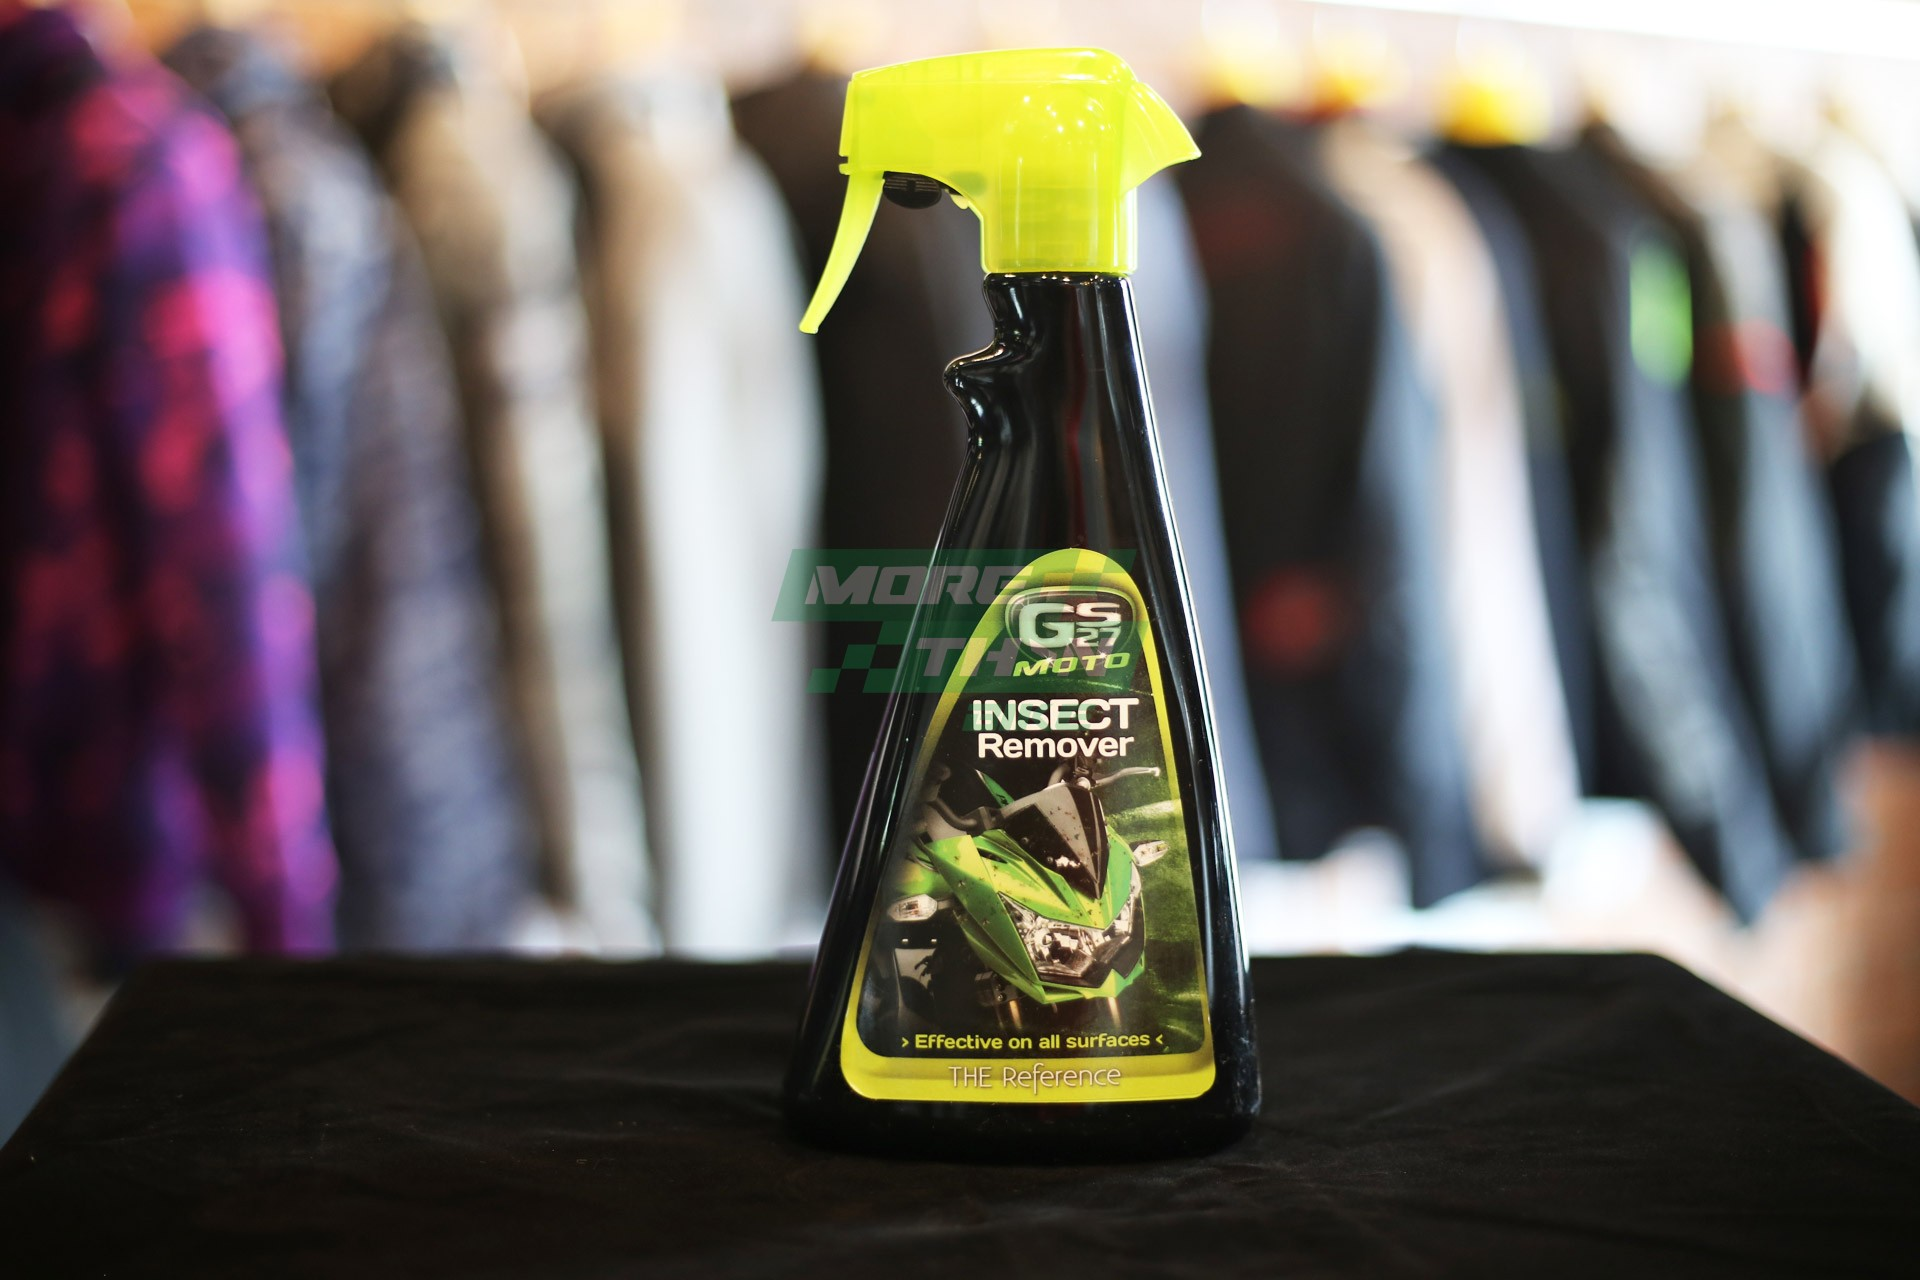 gs27-insect-remover-500-ml